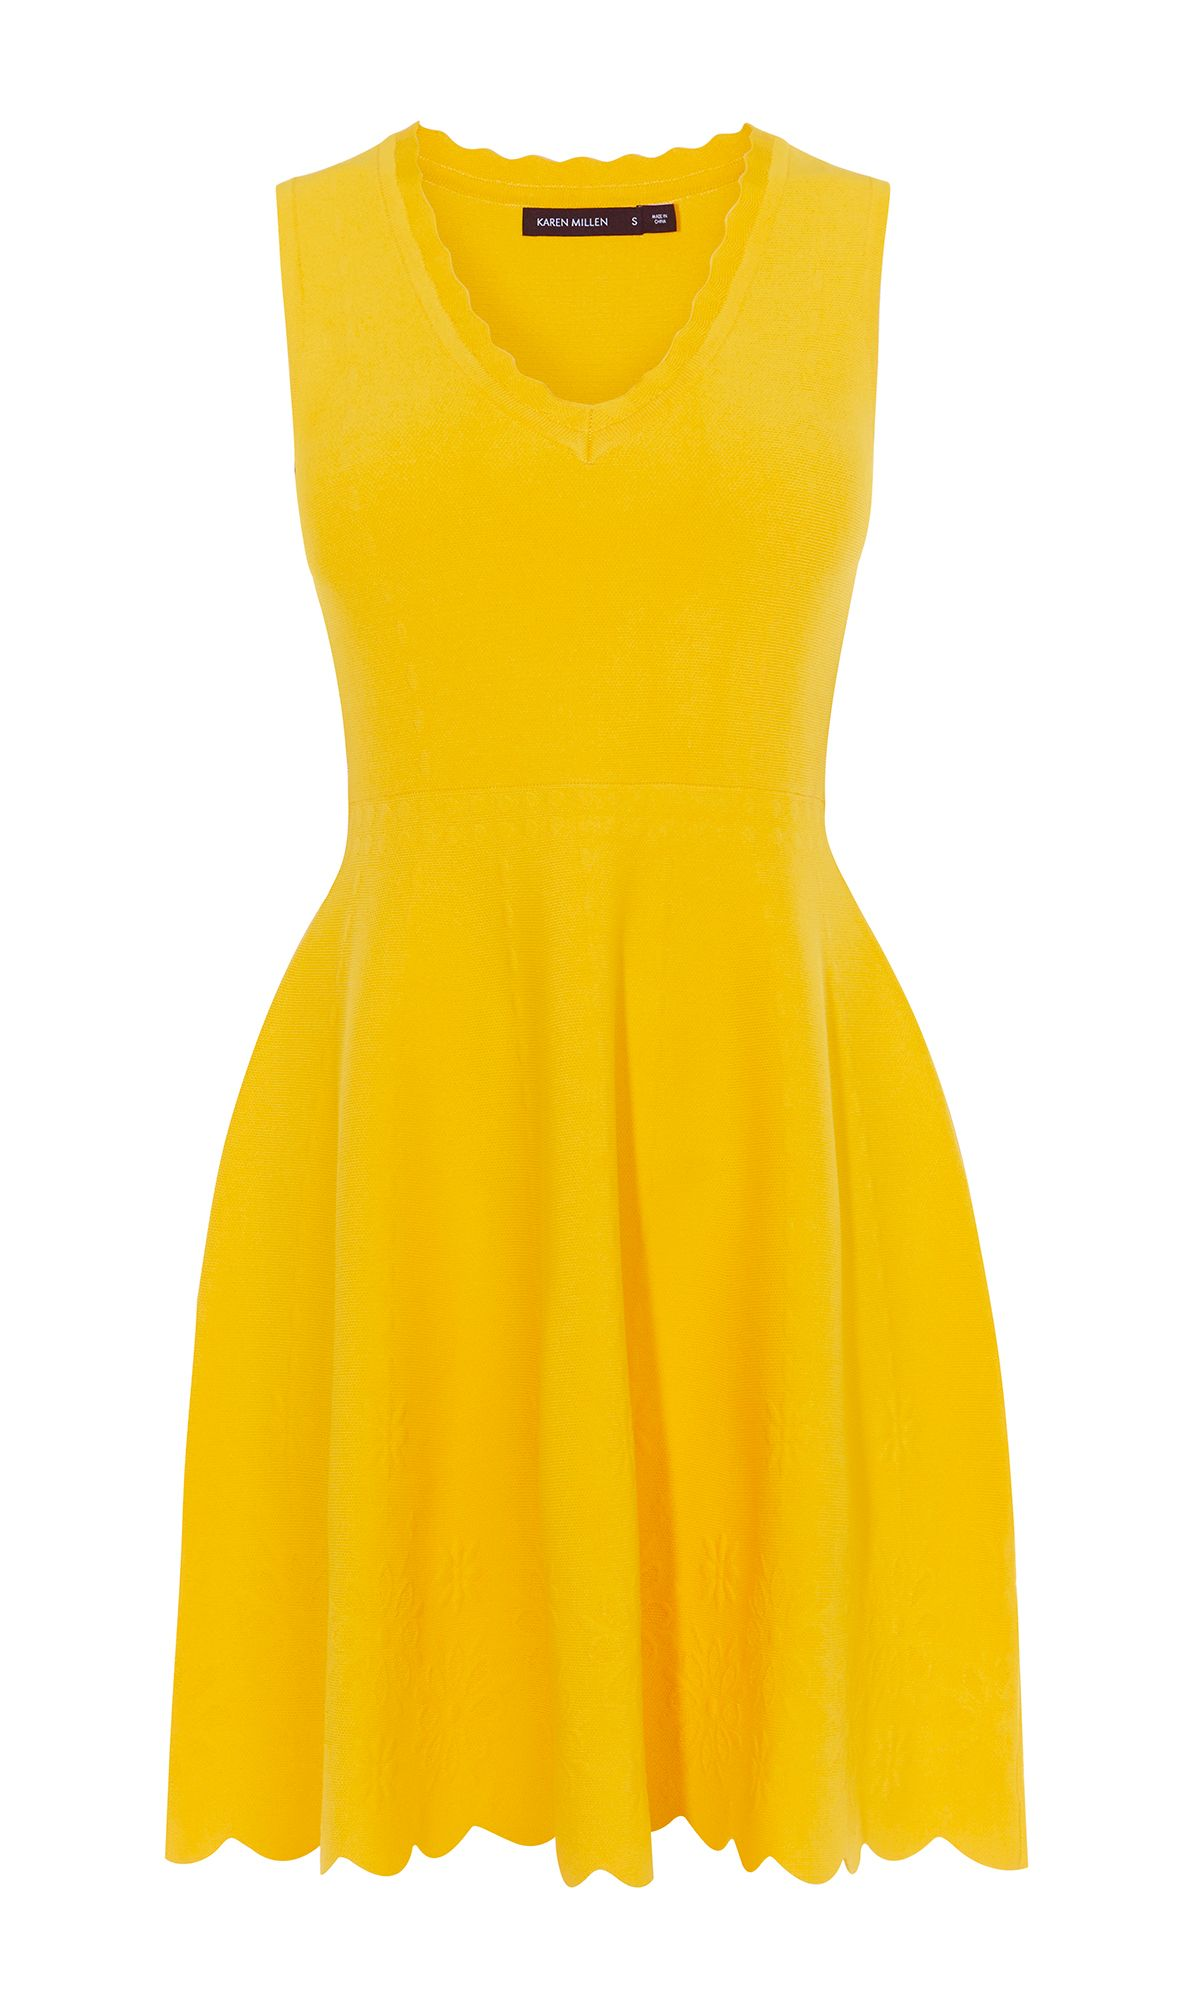 Karen Millen Jacquard Fit And Flare Dress, Yellow